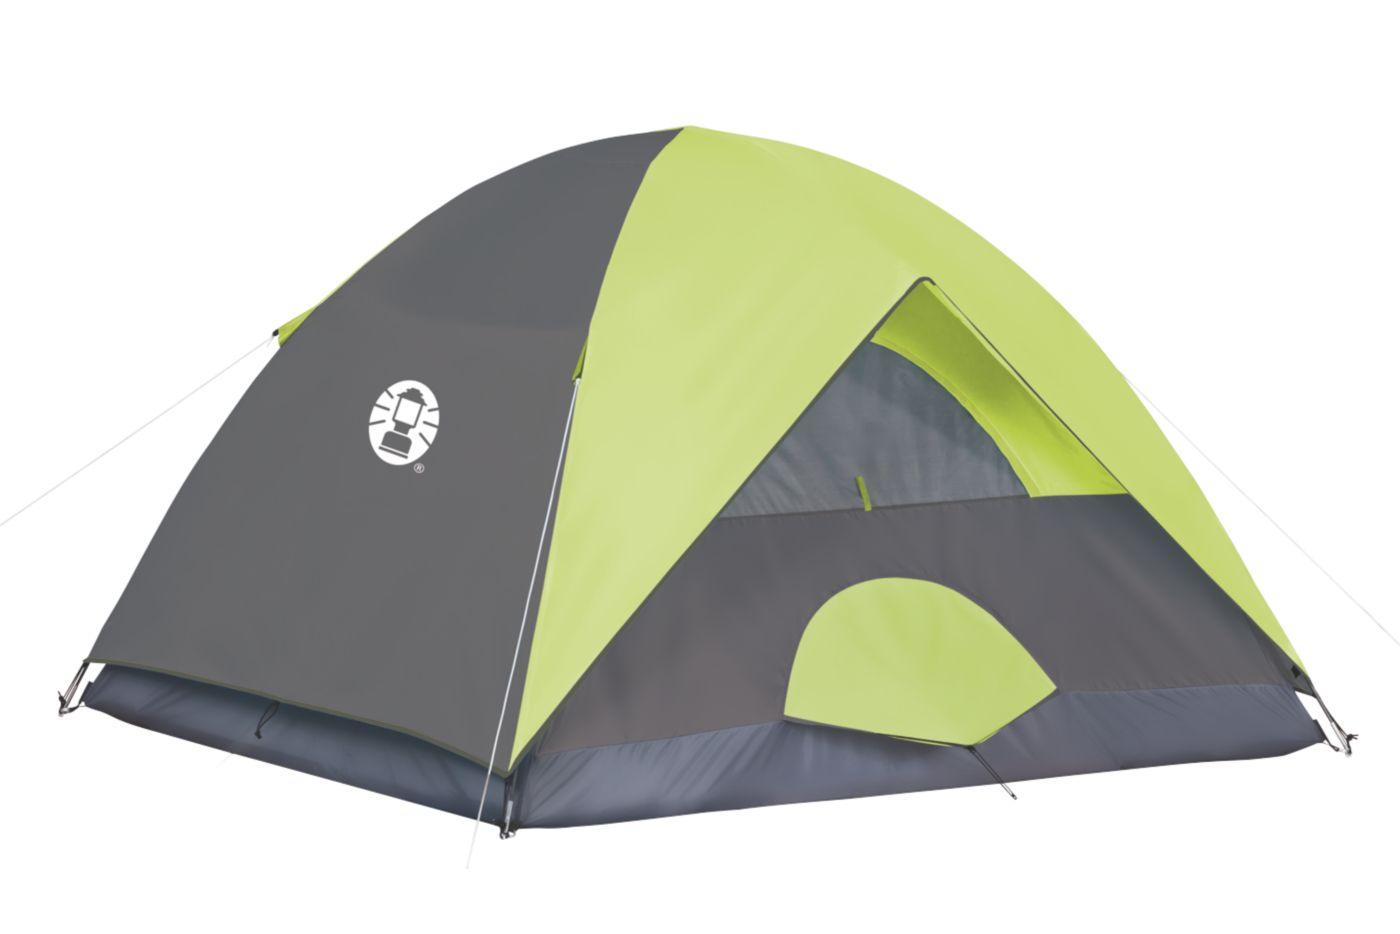 ... Galileo™ 3 Person Dome Tent ...  sc 1 st  Coleman & 3 Person Tent | Dome Tent | Coleman